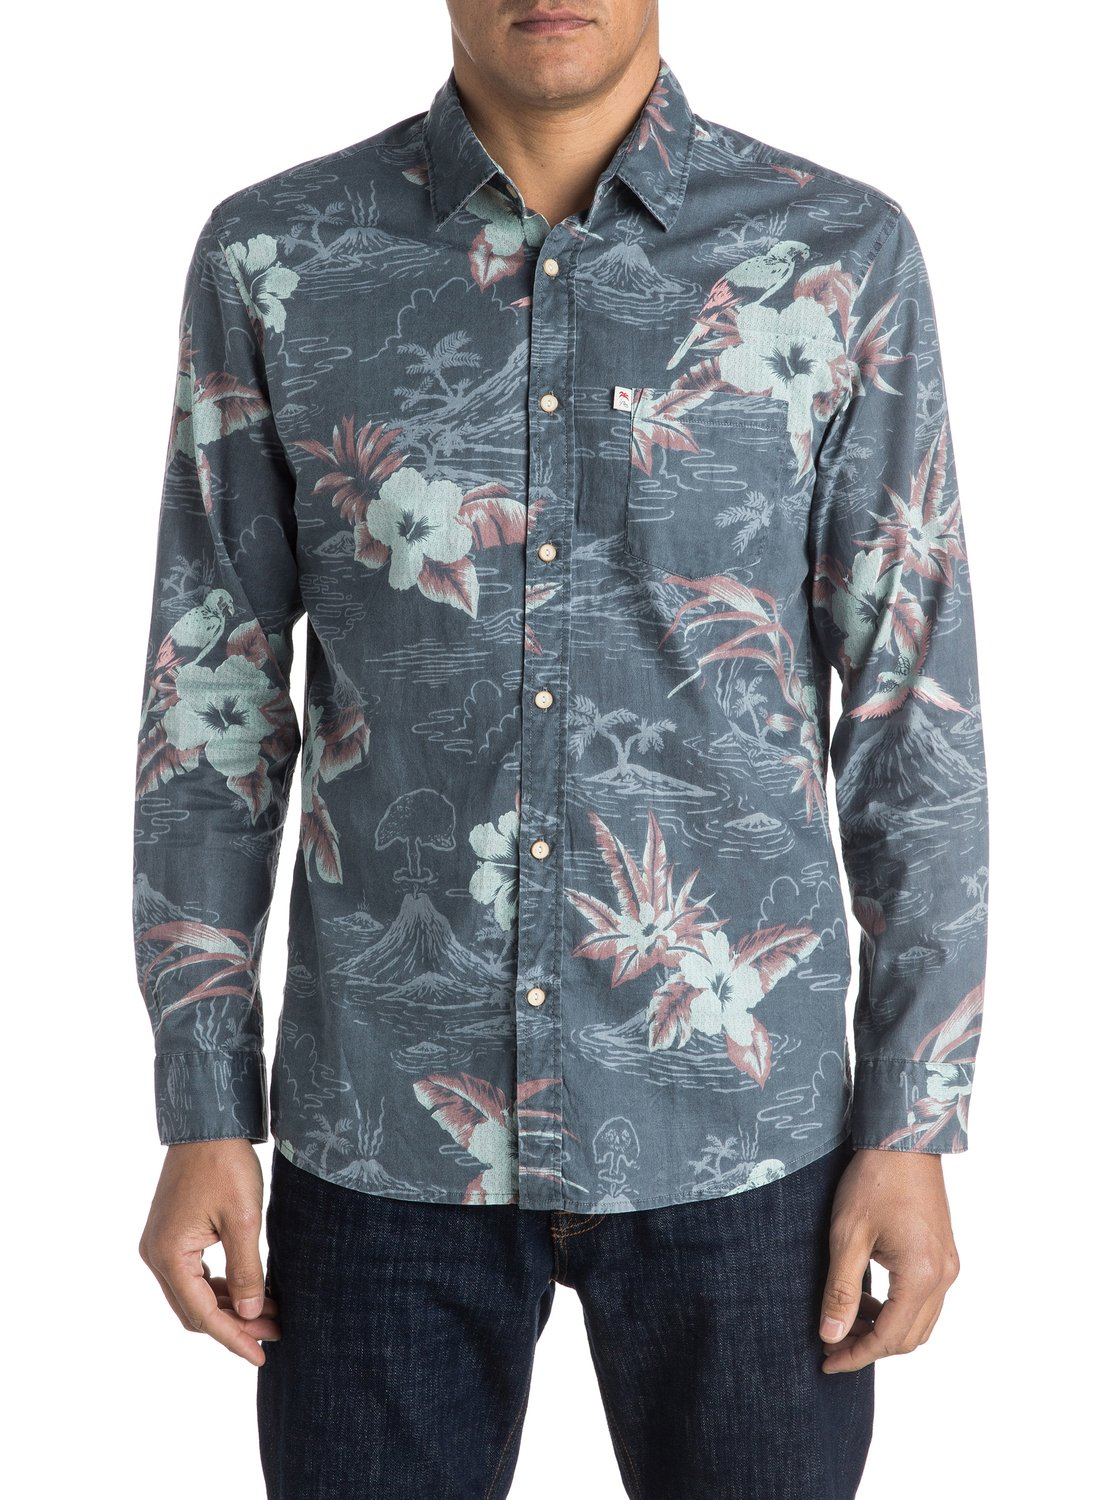 5fc5edb65fe 0 Parrot Jungle - Long Sleeve Shirt EQYWT03394 Quiksilver